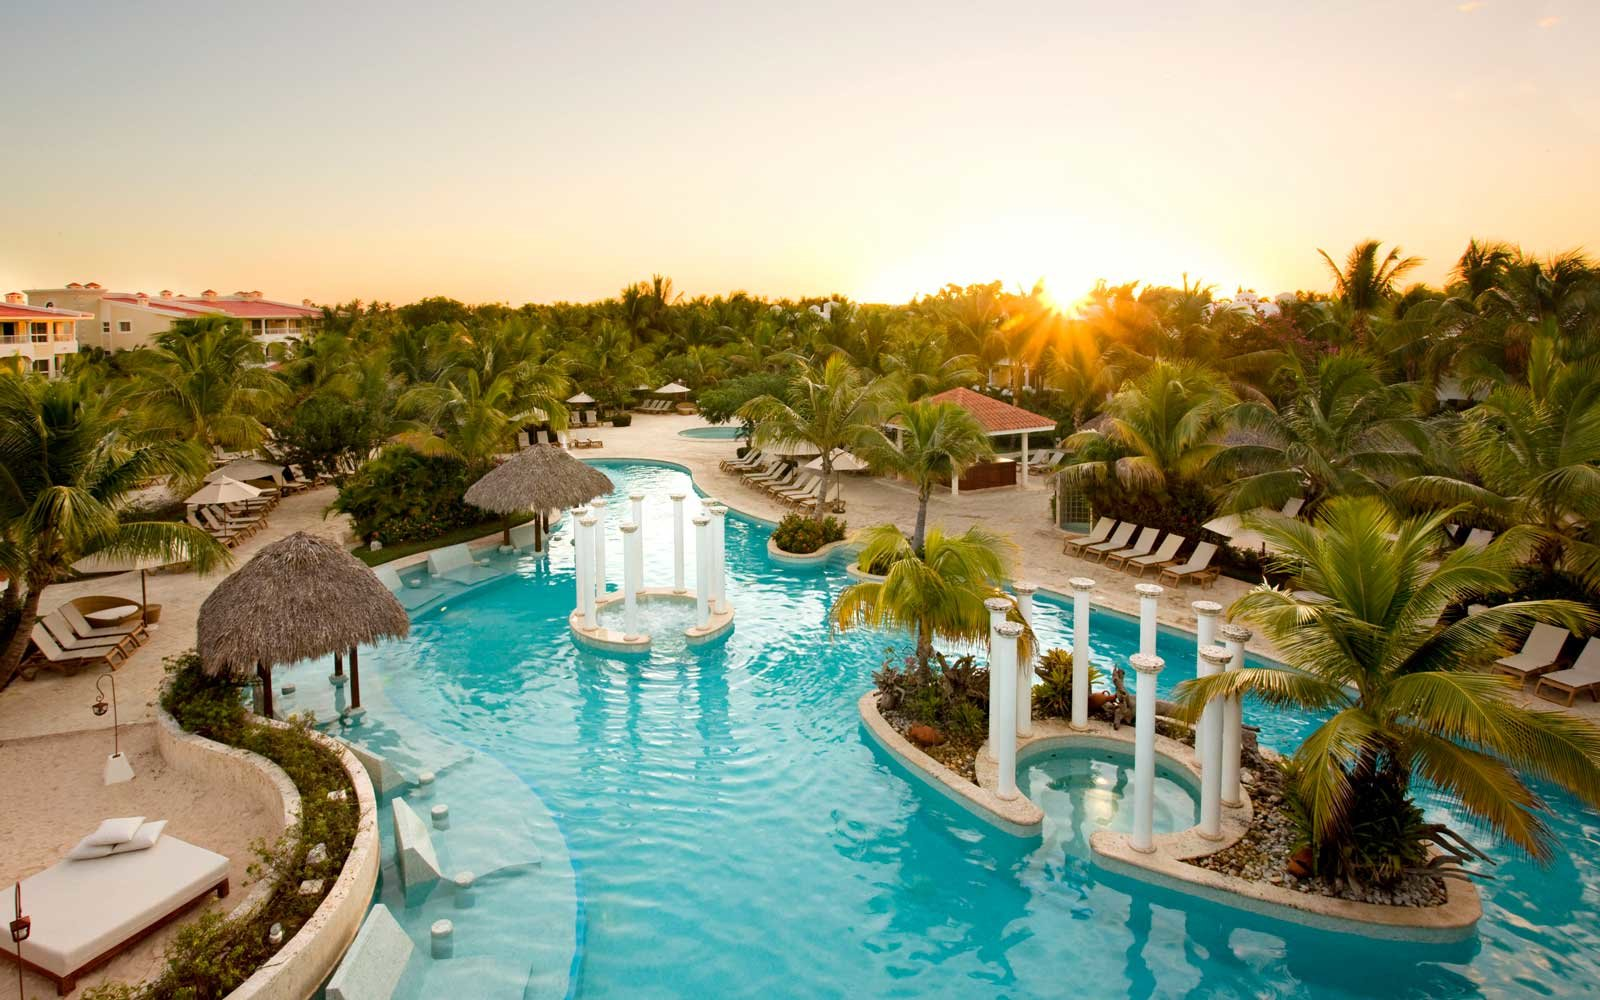 Mélia Caribe Tropical view of Swimming Pool